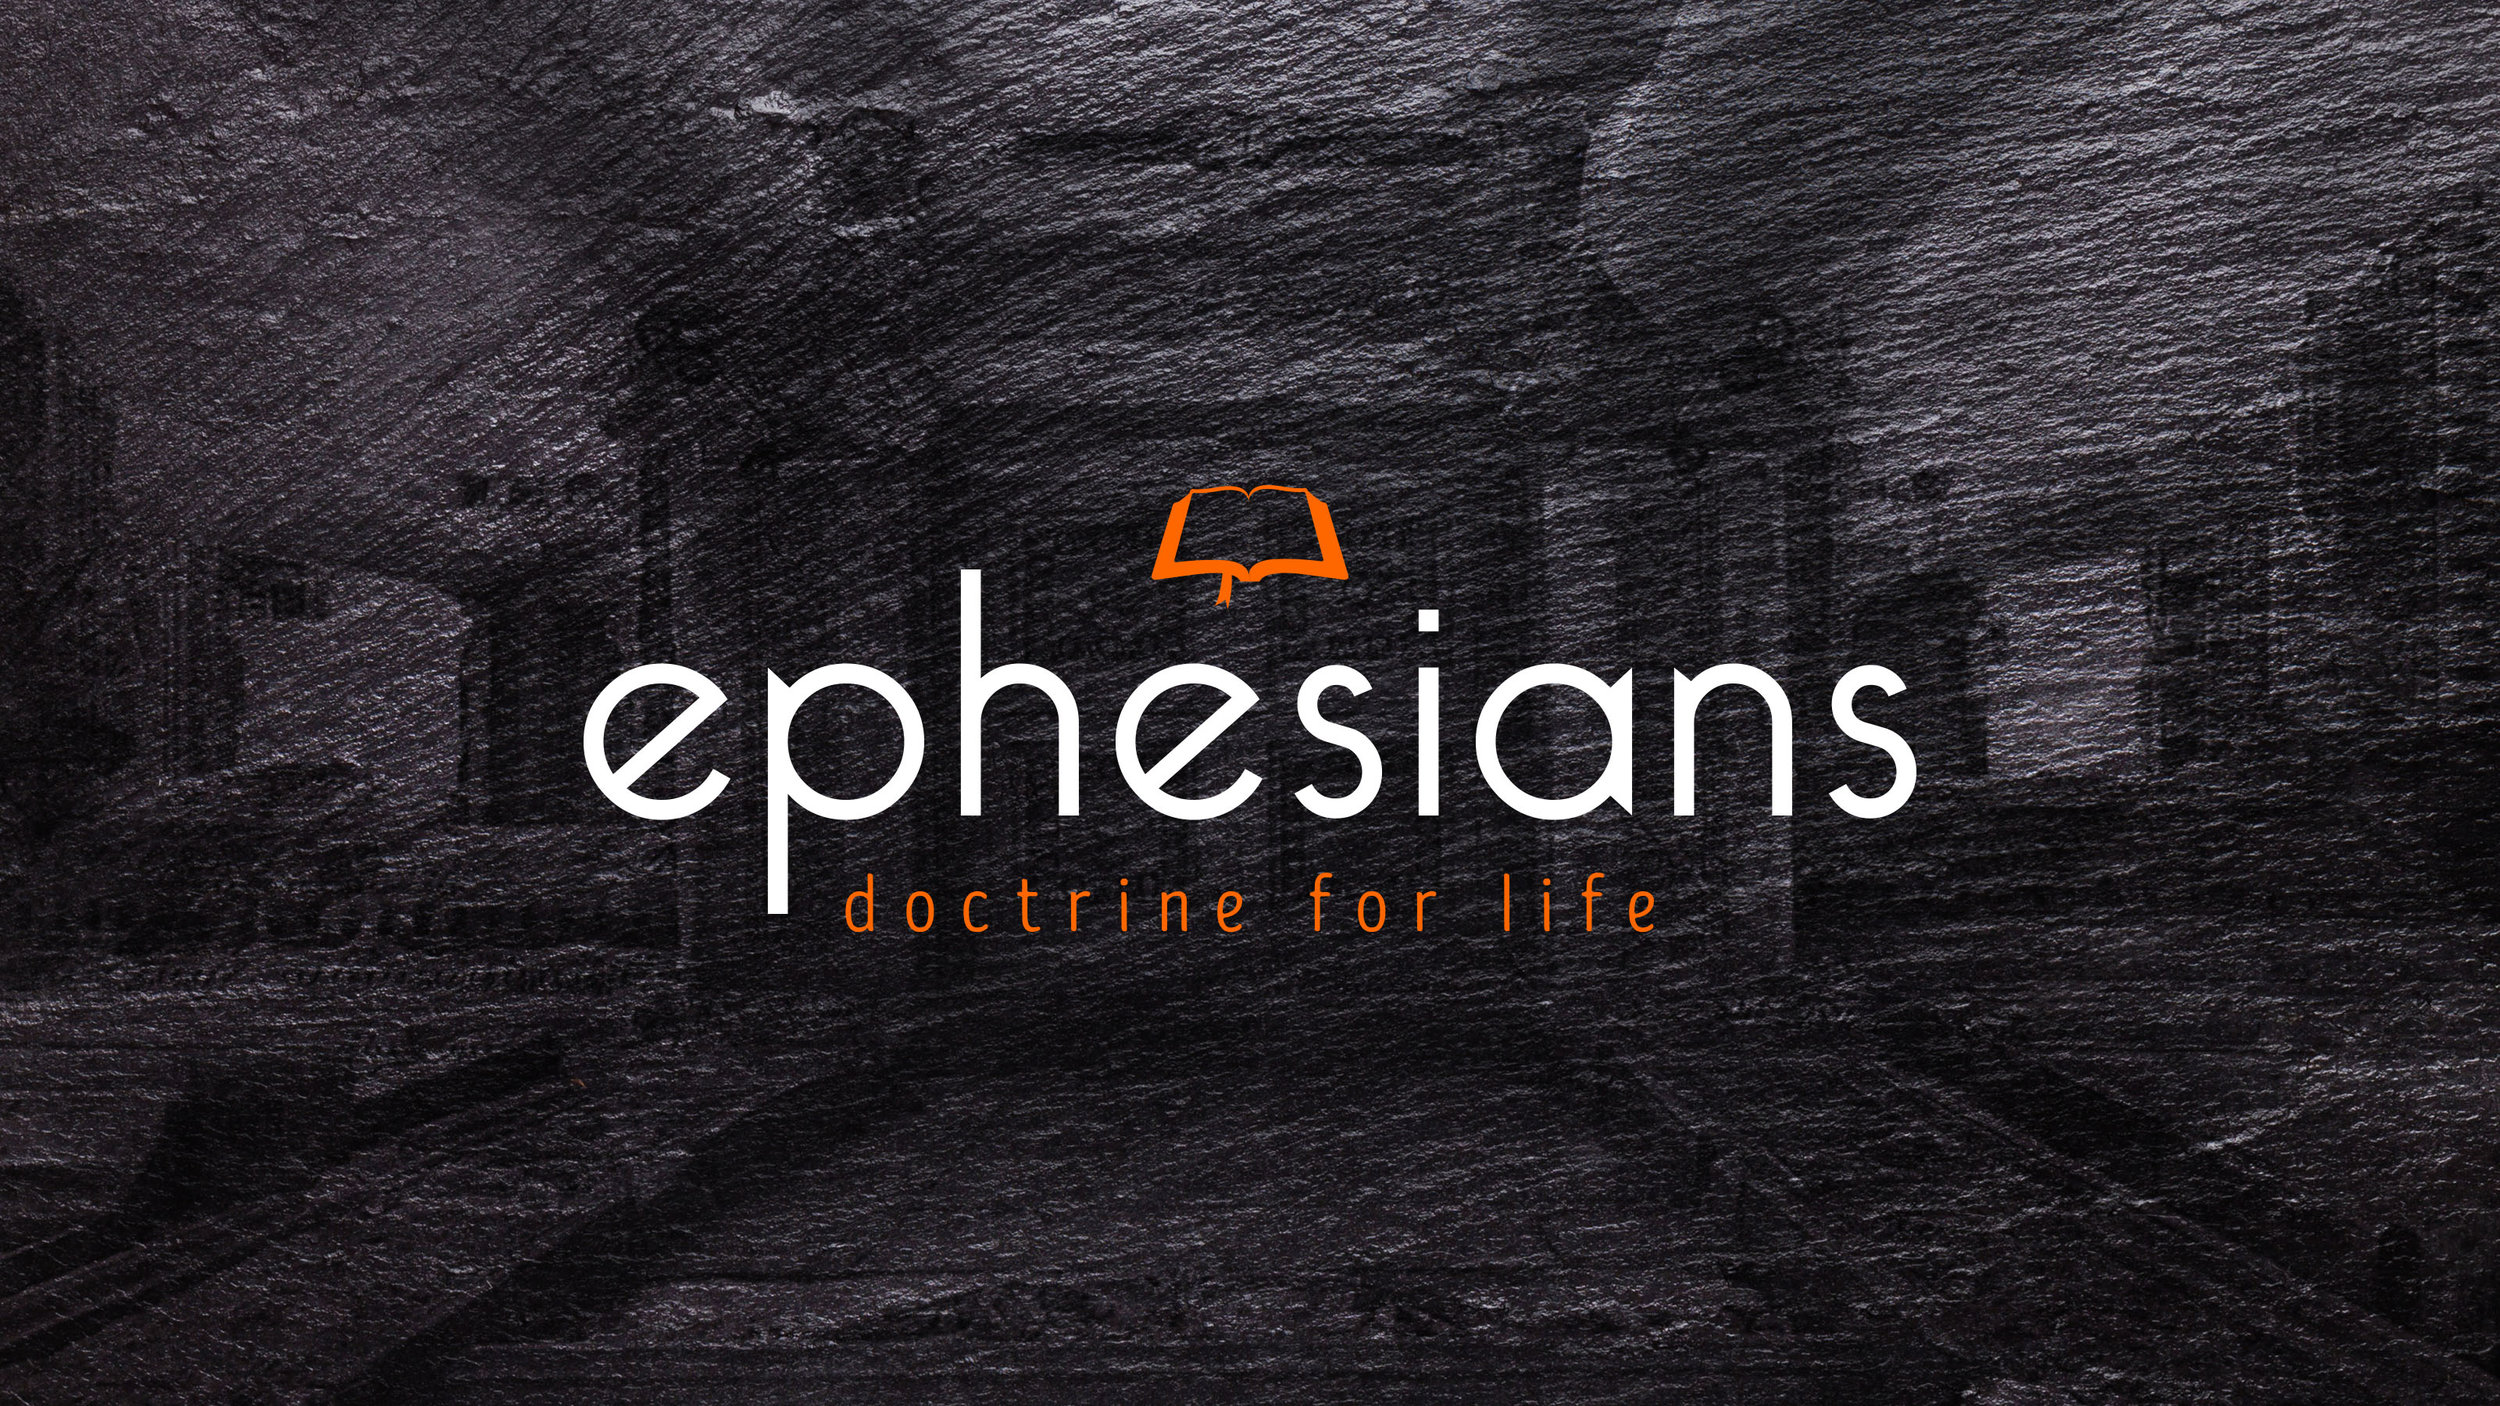 Ephesians_Slide SMALL VERSION.jpg